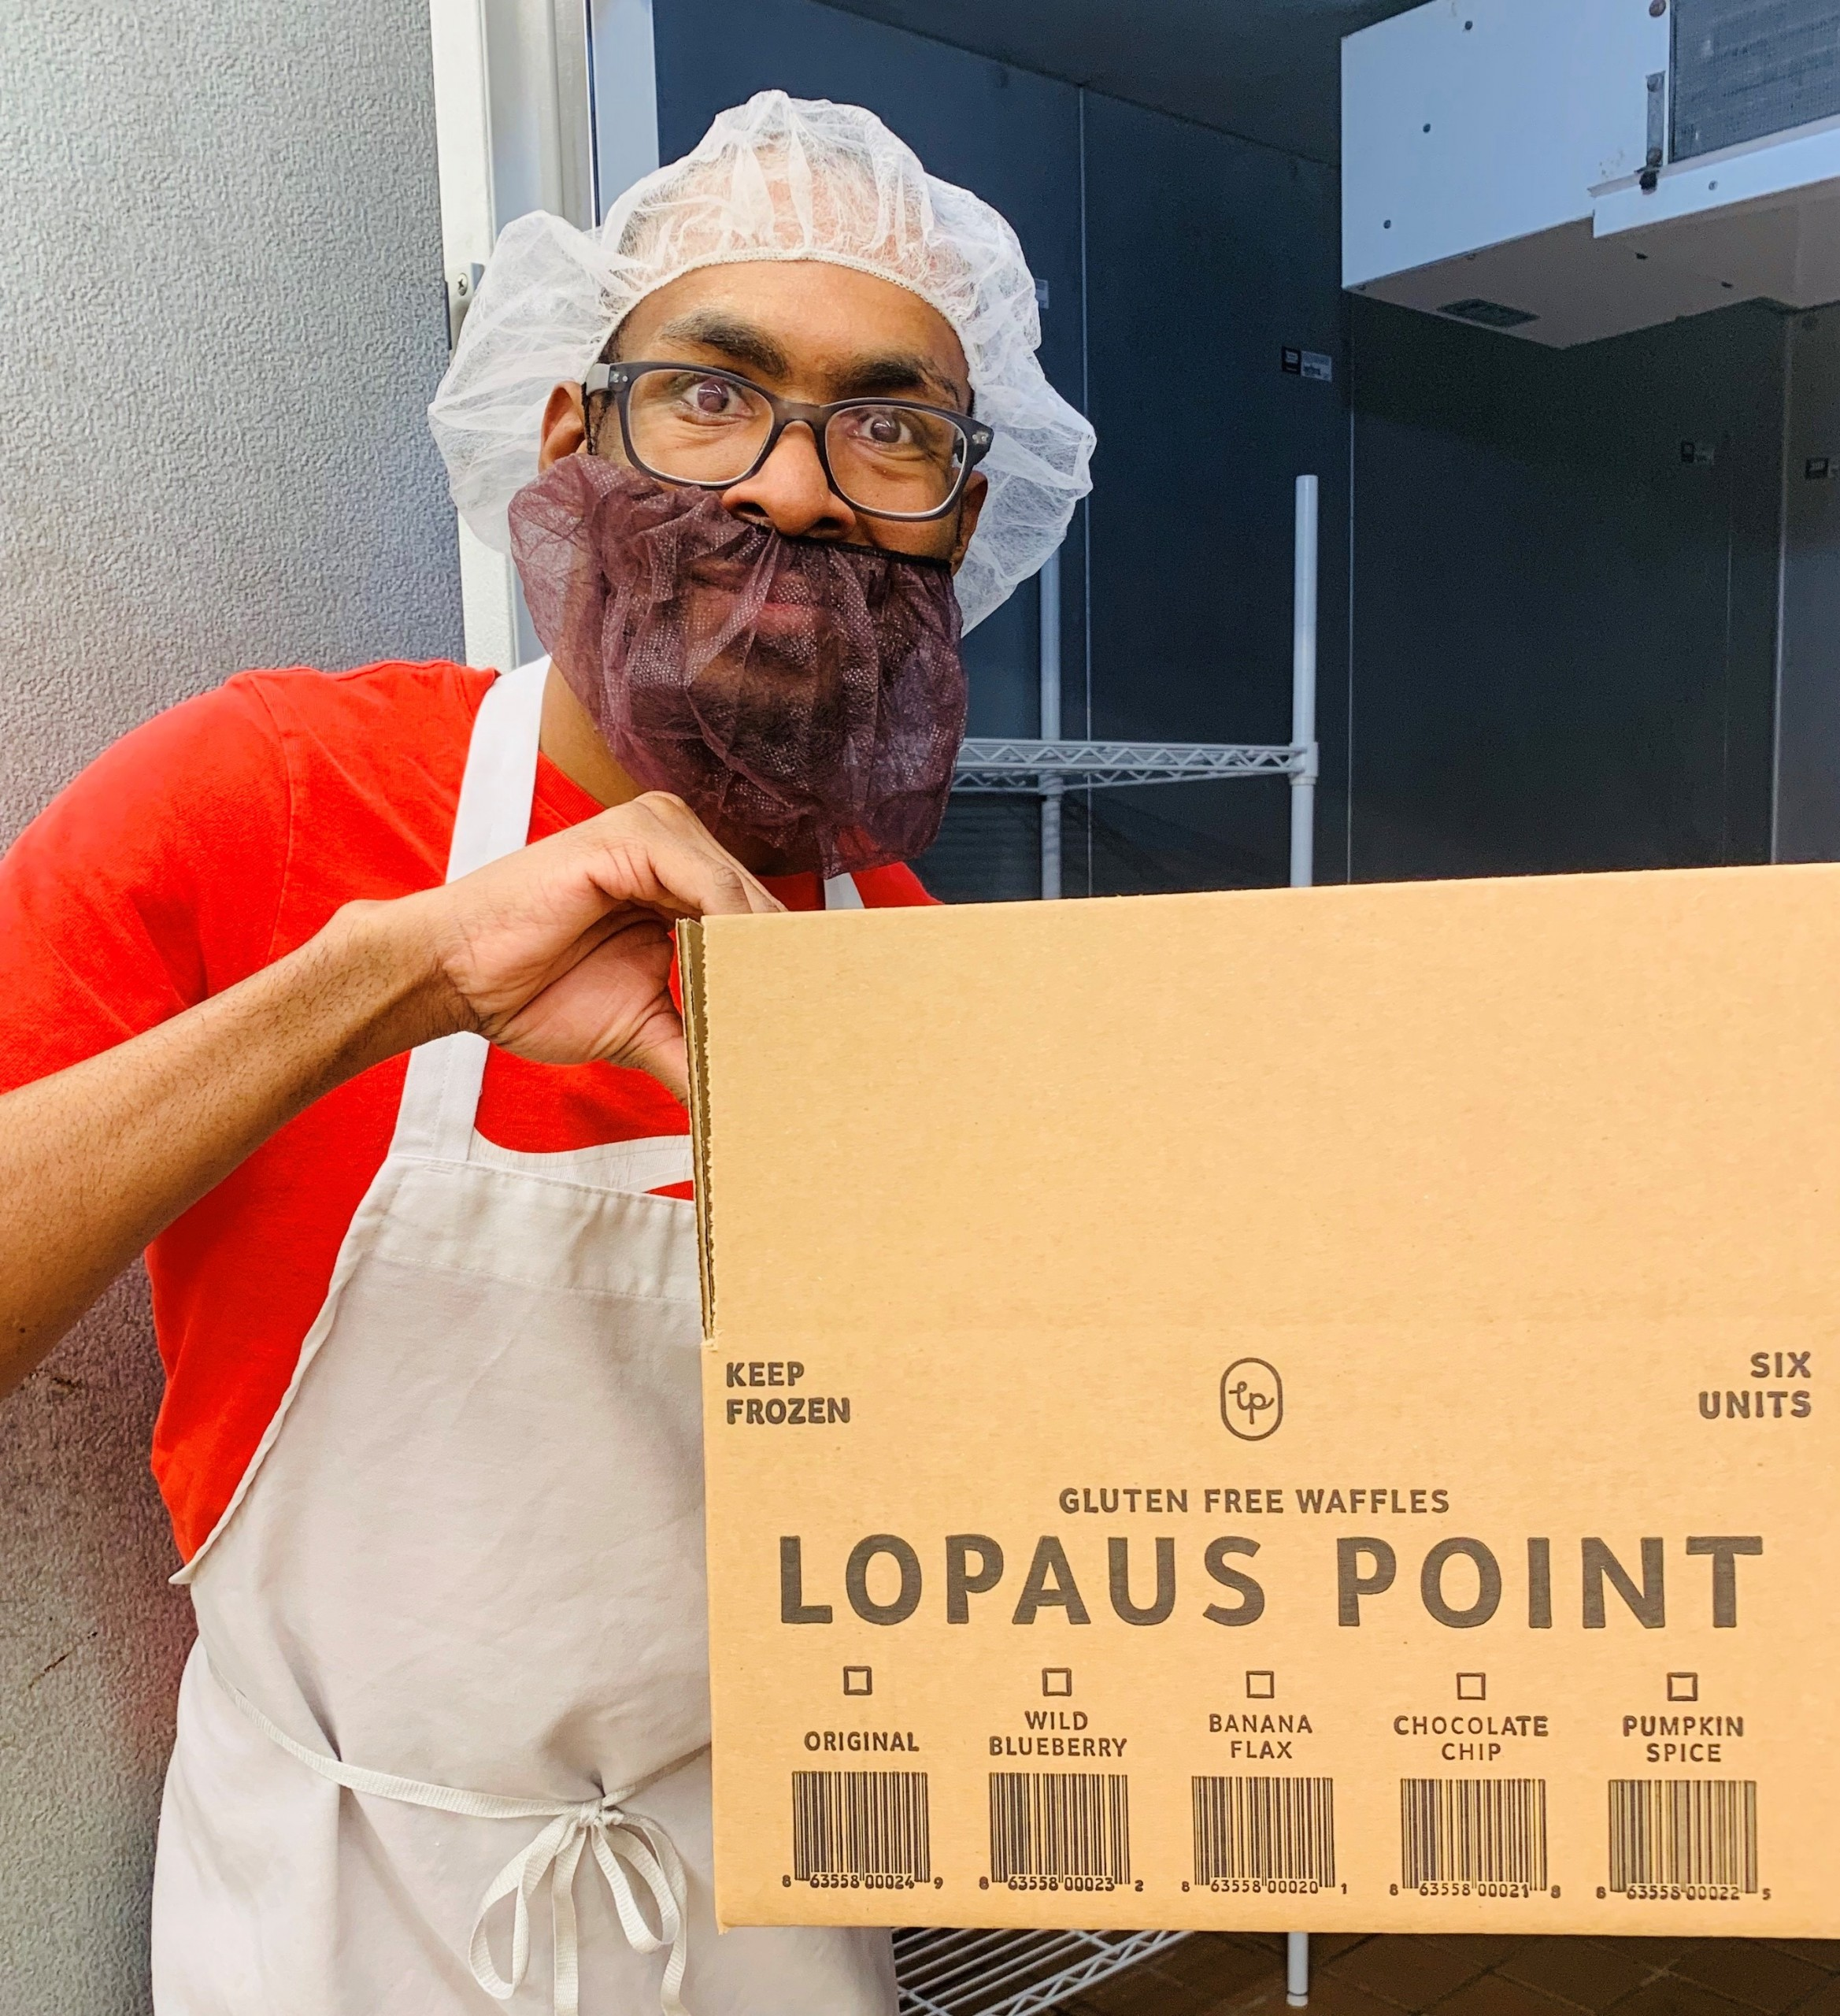 Brandon fills a box with Lopaus Point waffles